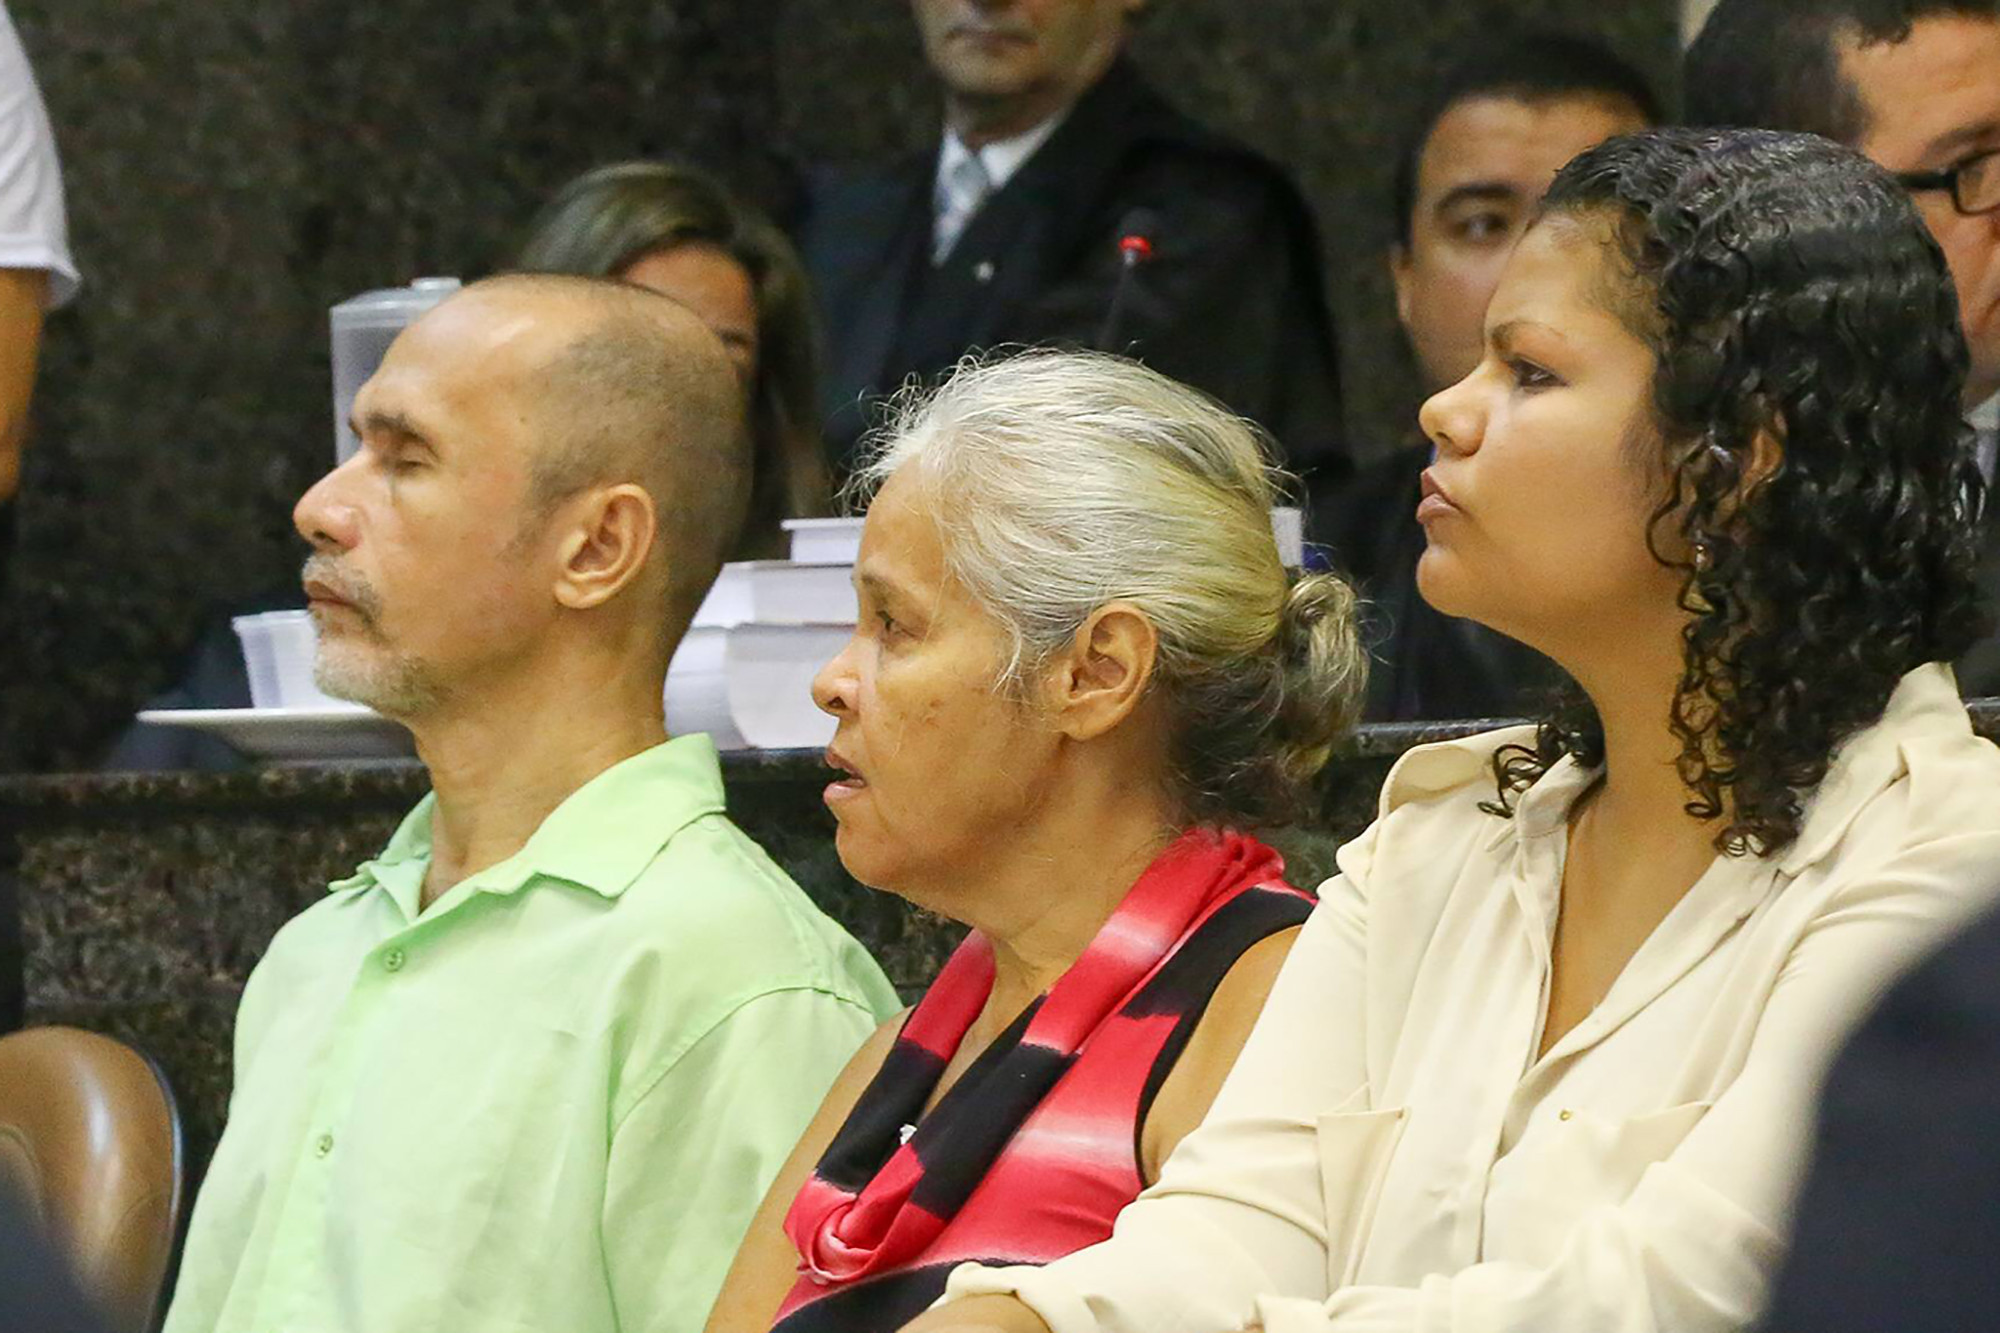 Cannibal trio sentenced for killing women, stuffing flesh into pastries